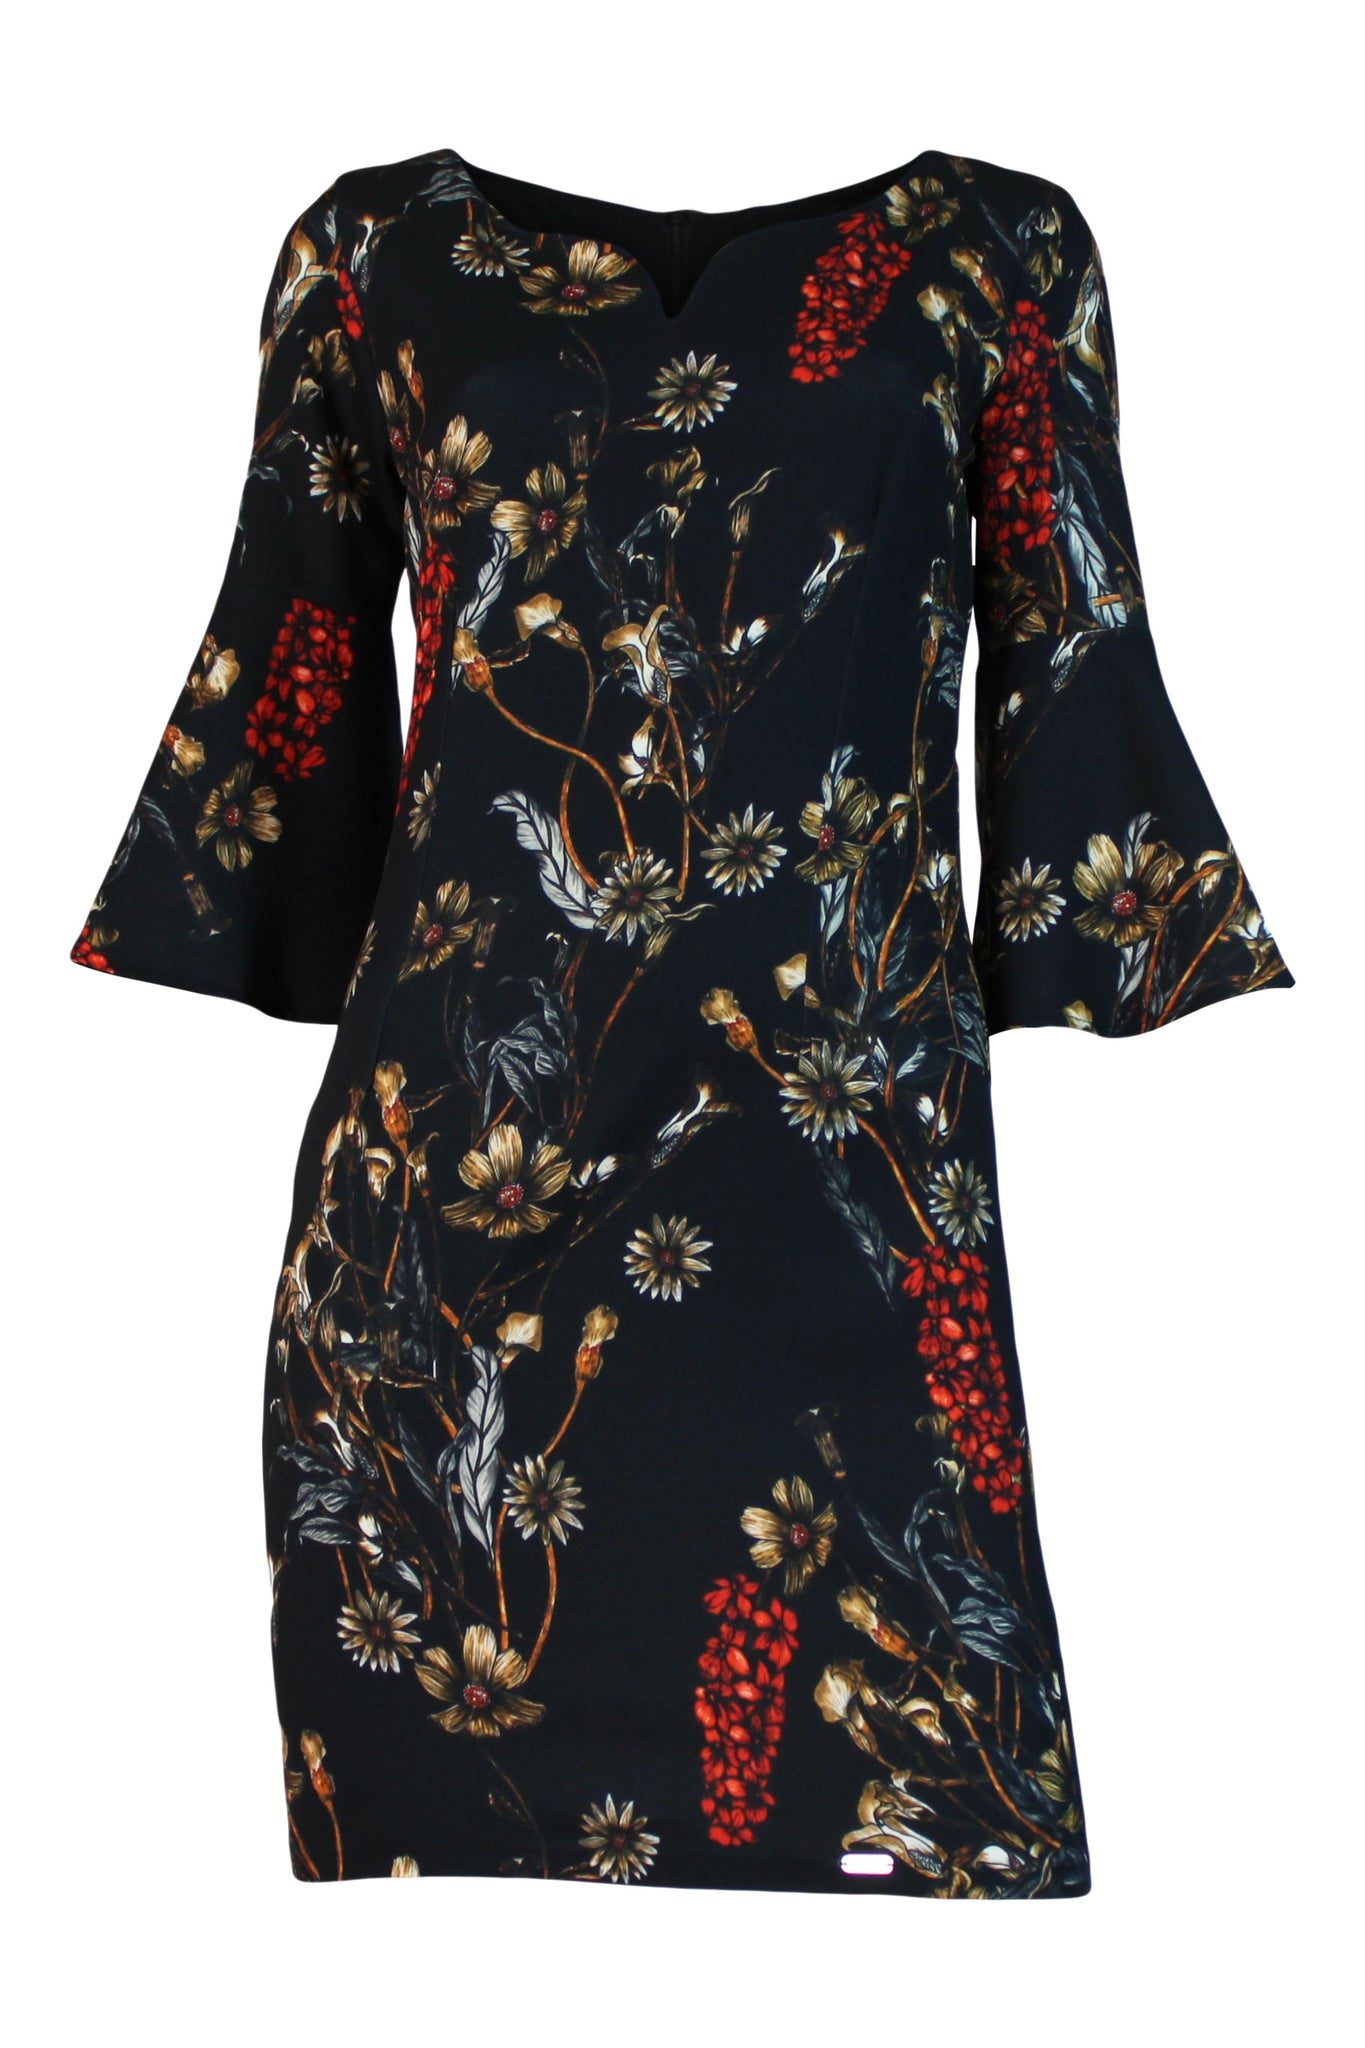 FLOWER PRINTED DRESS - Marvy Fashion Boutique